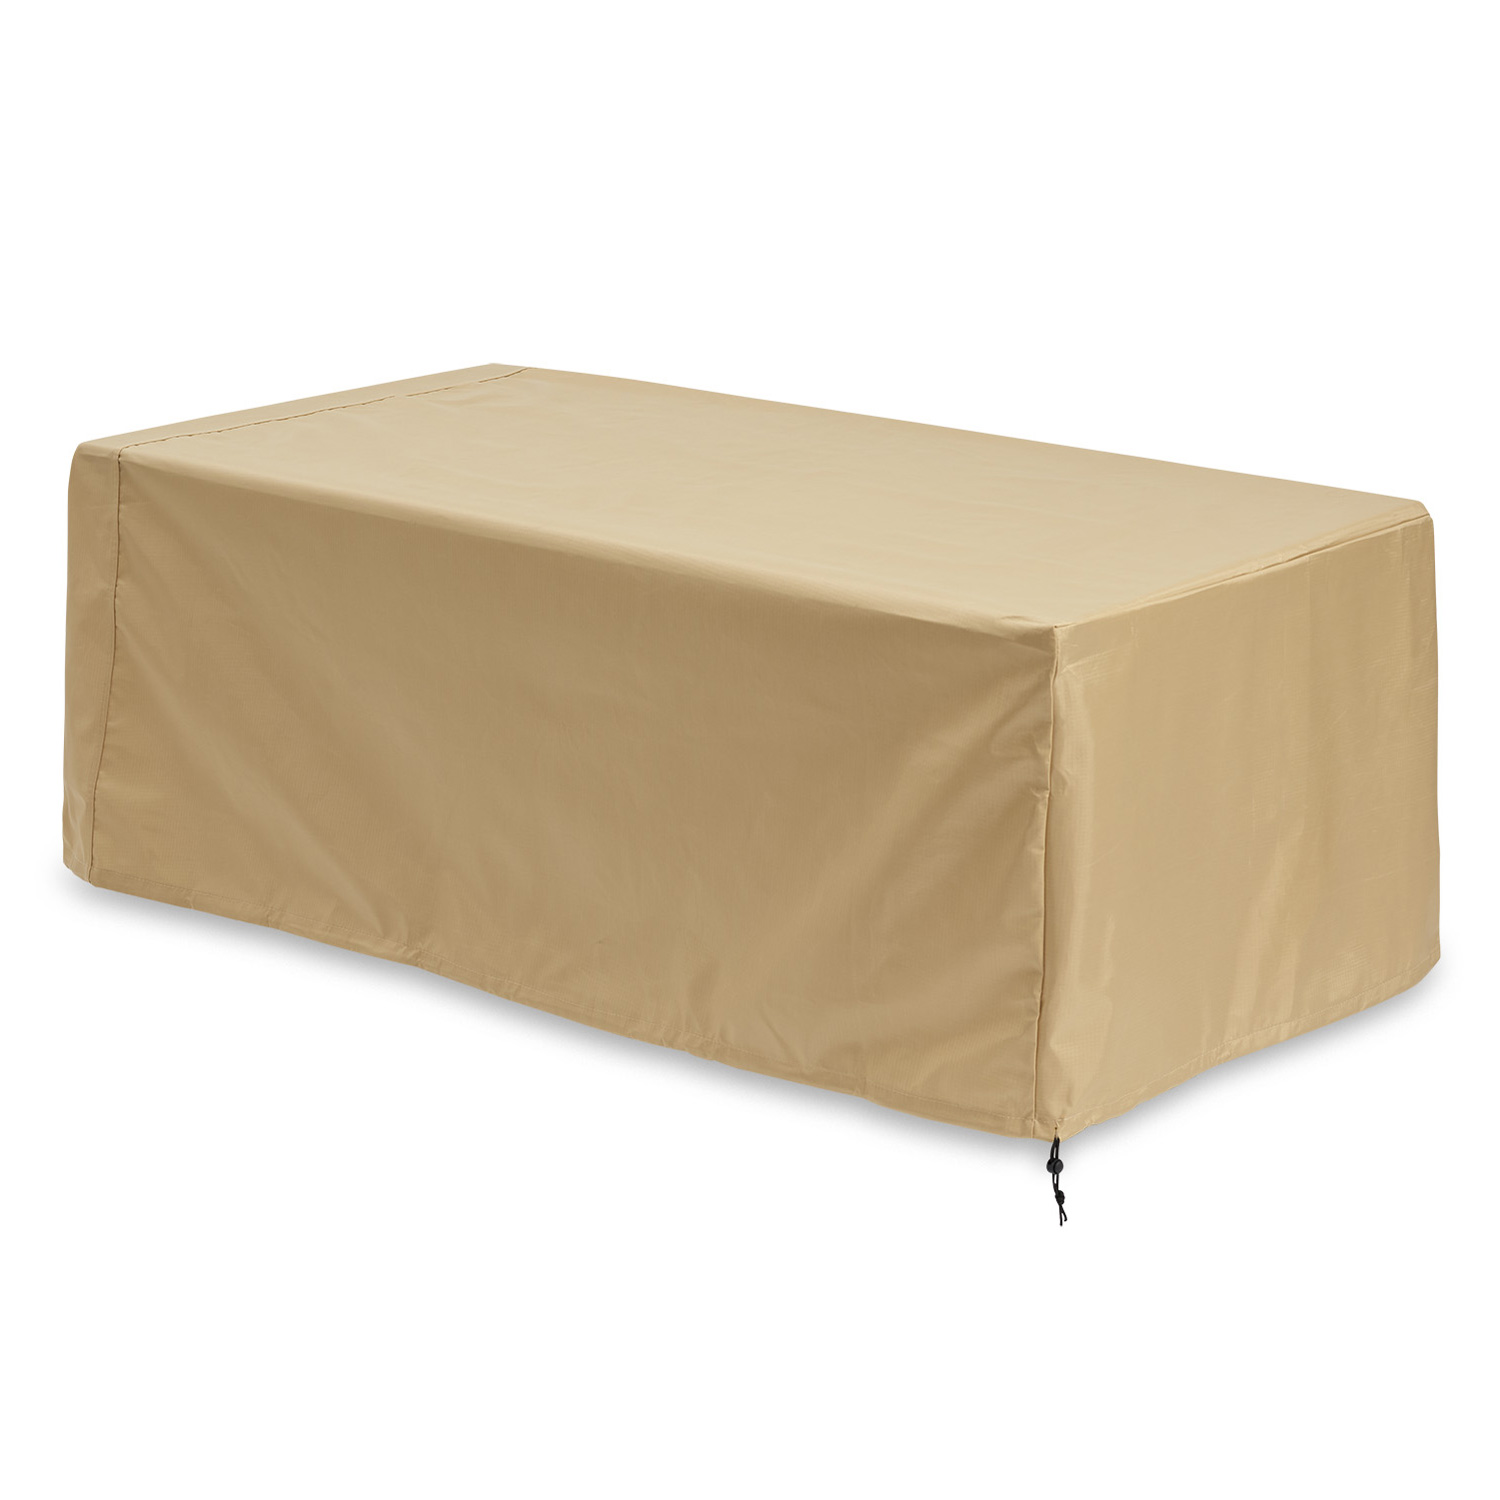 "Linear Tan Protective Cover. (63"" W X 34"" D X 21.75"" H)"